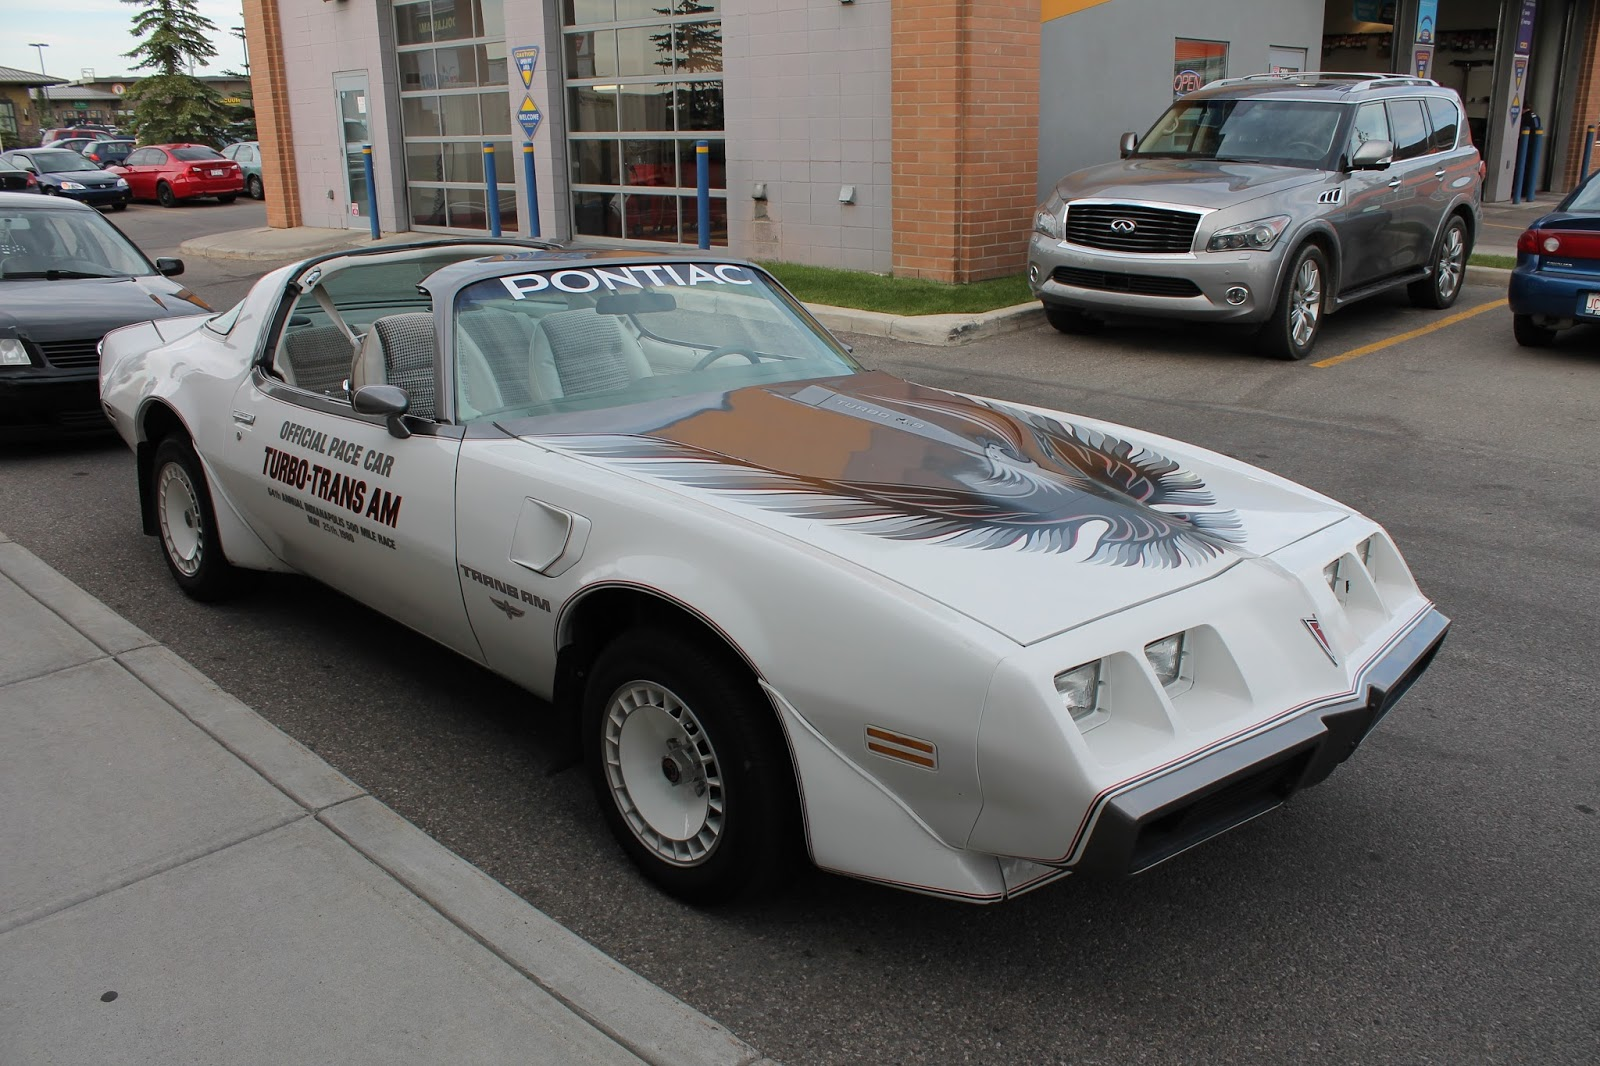 But Pontiac Knew This Day Would Come And They Had A Bold Plan To Restore Big Block Power To The Trans Am Without Big Block Fuel Economy